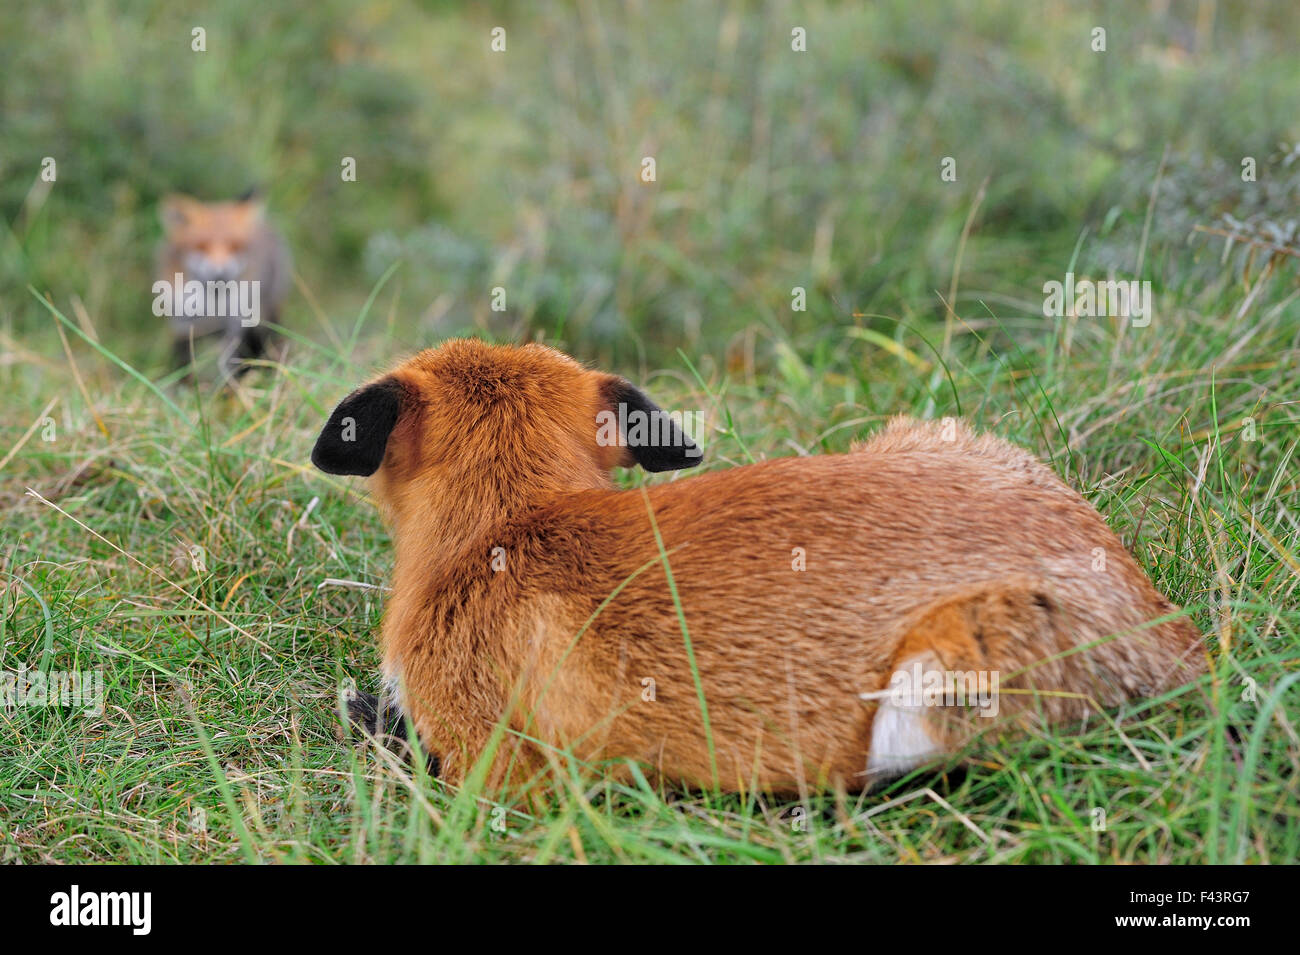 Red fox (Vulpes vulpes) in defensive posture with ears flat,  watching rival approaching, the Netherlands, October - Stock Image